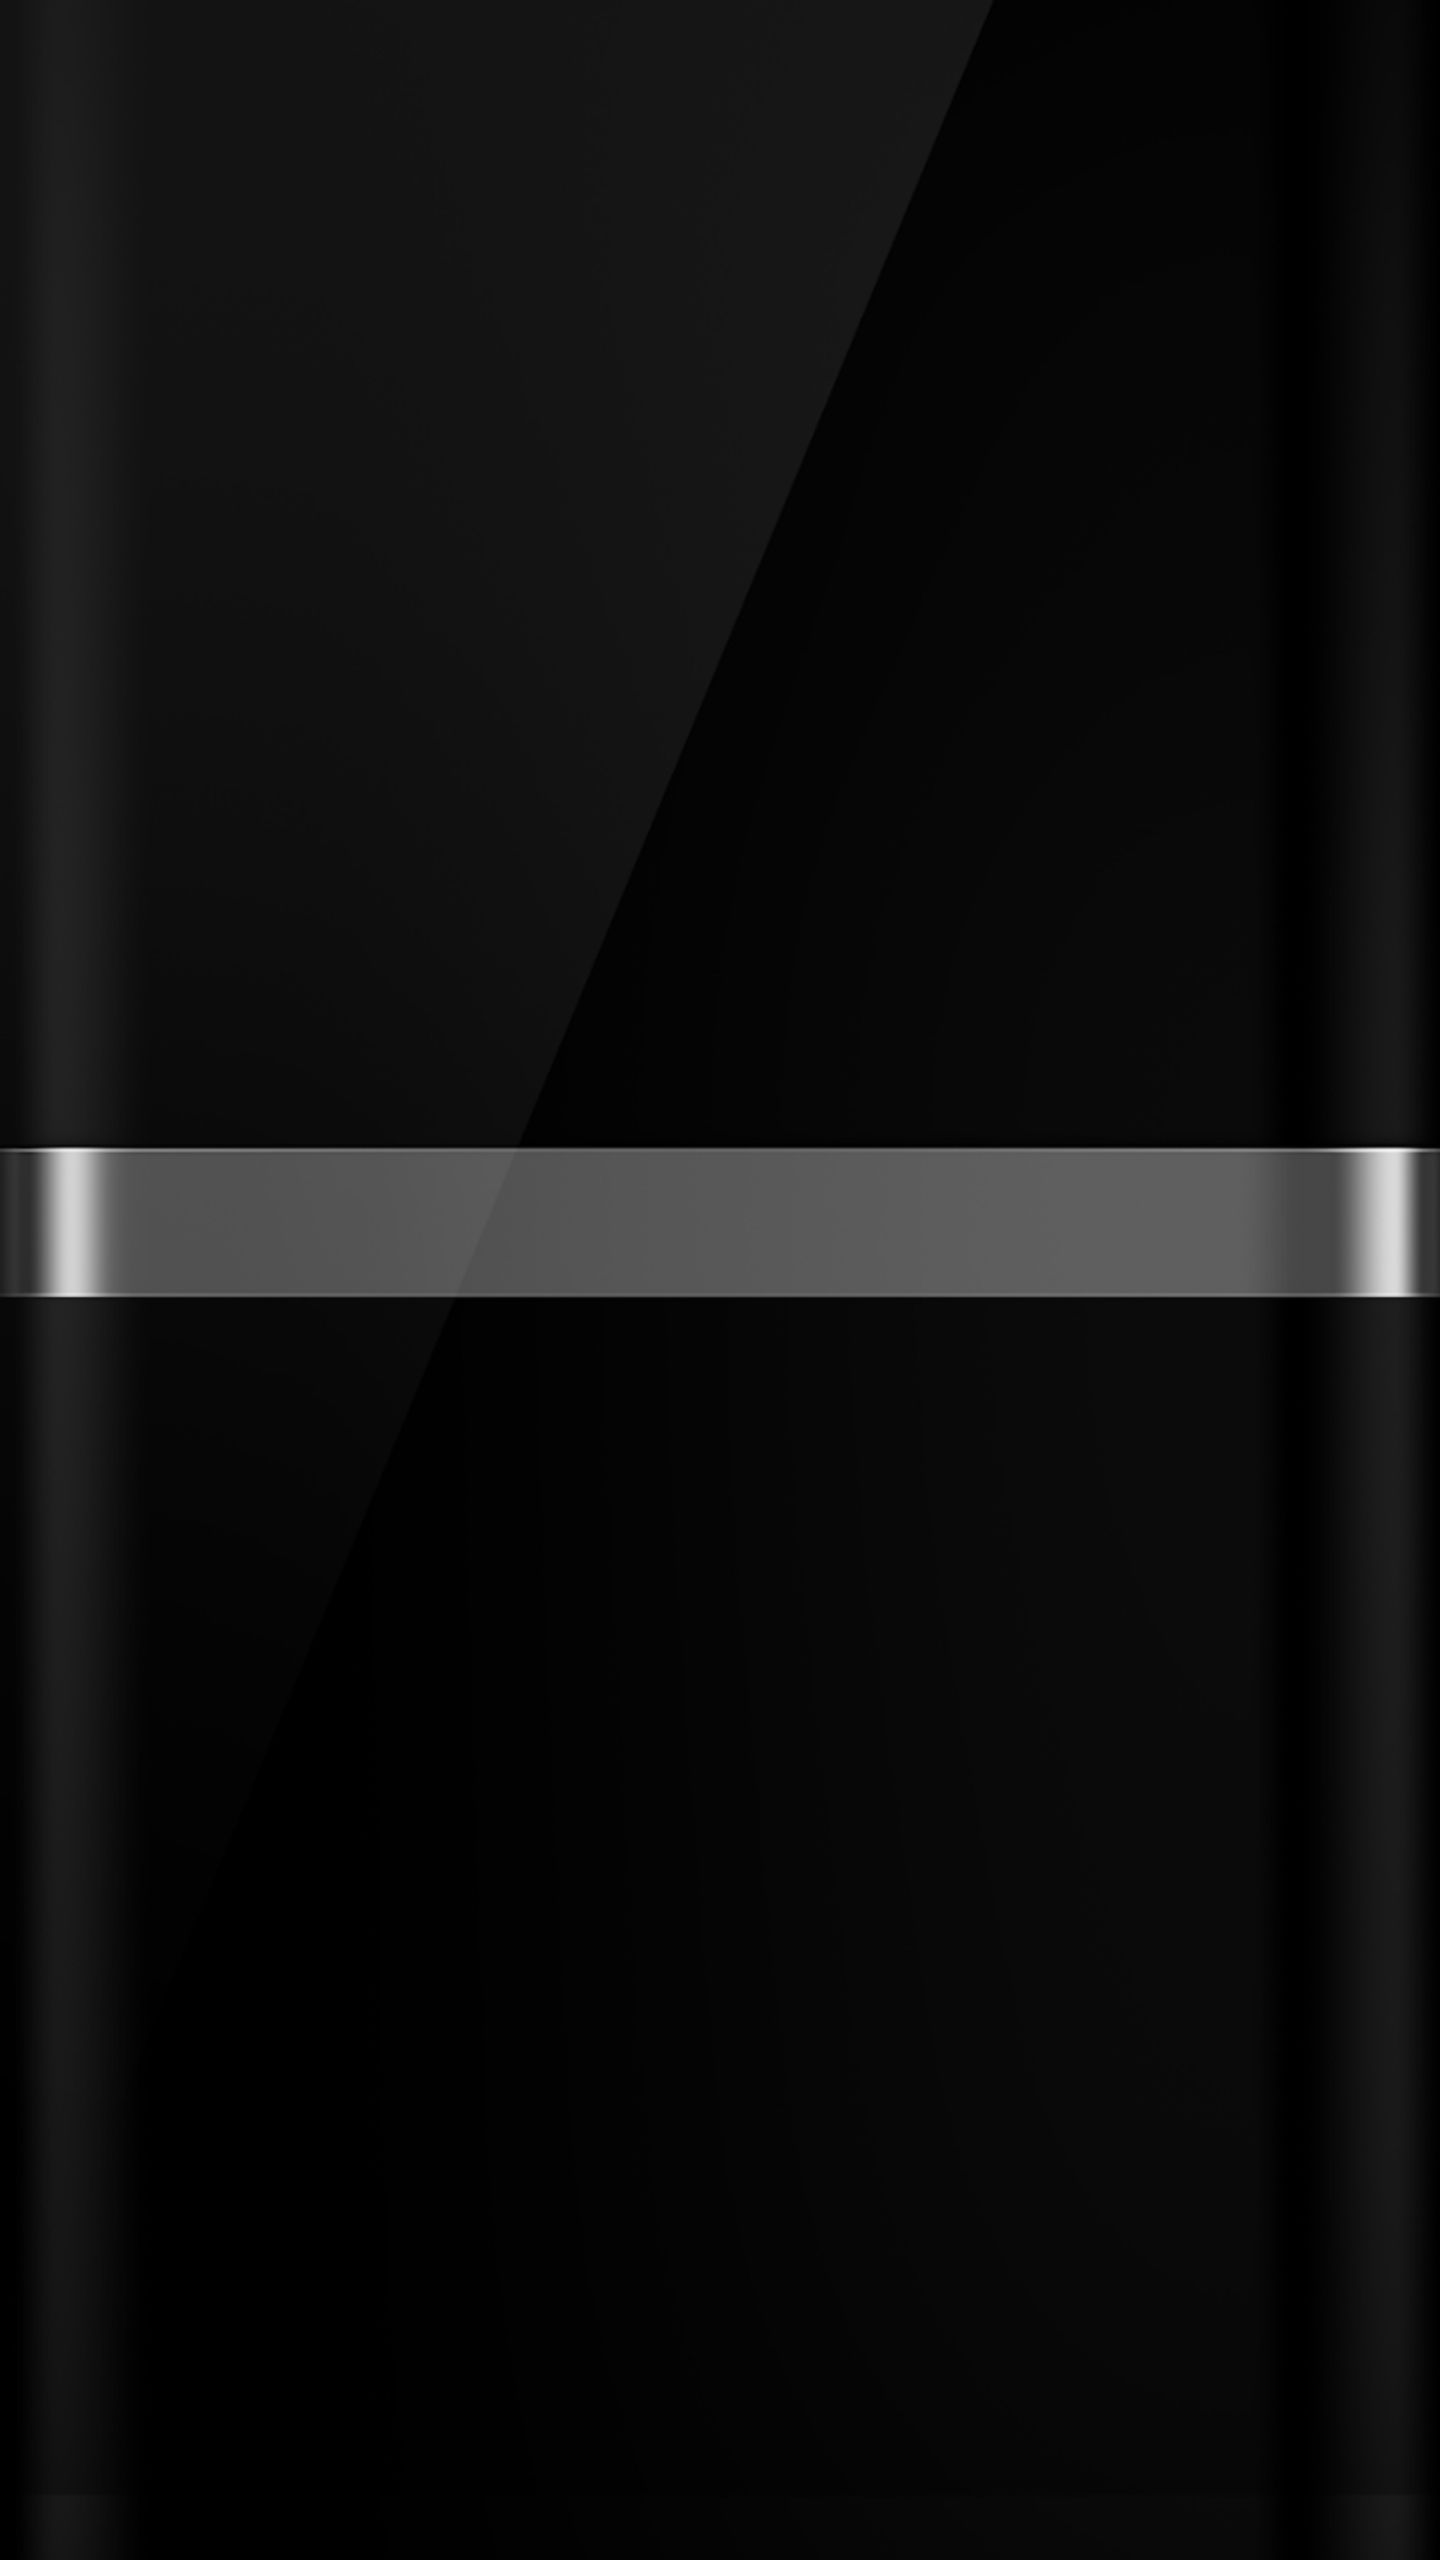 Dark S7 Edge Wallpaper 10 Black Background And Silver Line With Floral Texture Hd Wallpapers Wallpapers Download High Resolution Wallpapers Wallpaper Edge Black Wallpaper Iphone Dark Dark Wallpaper